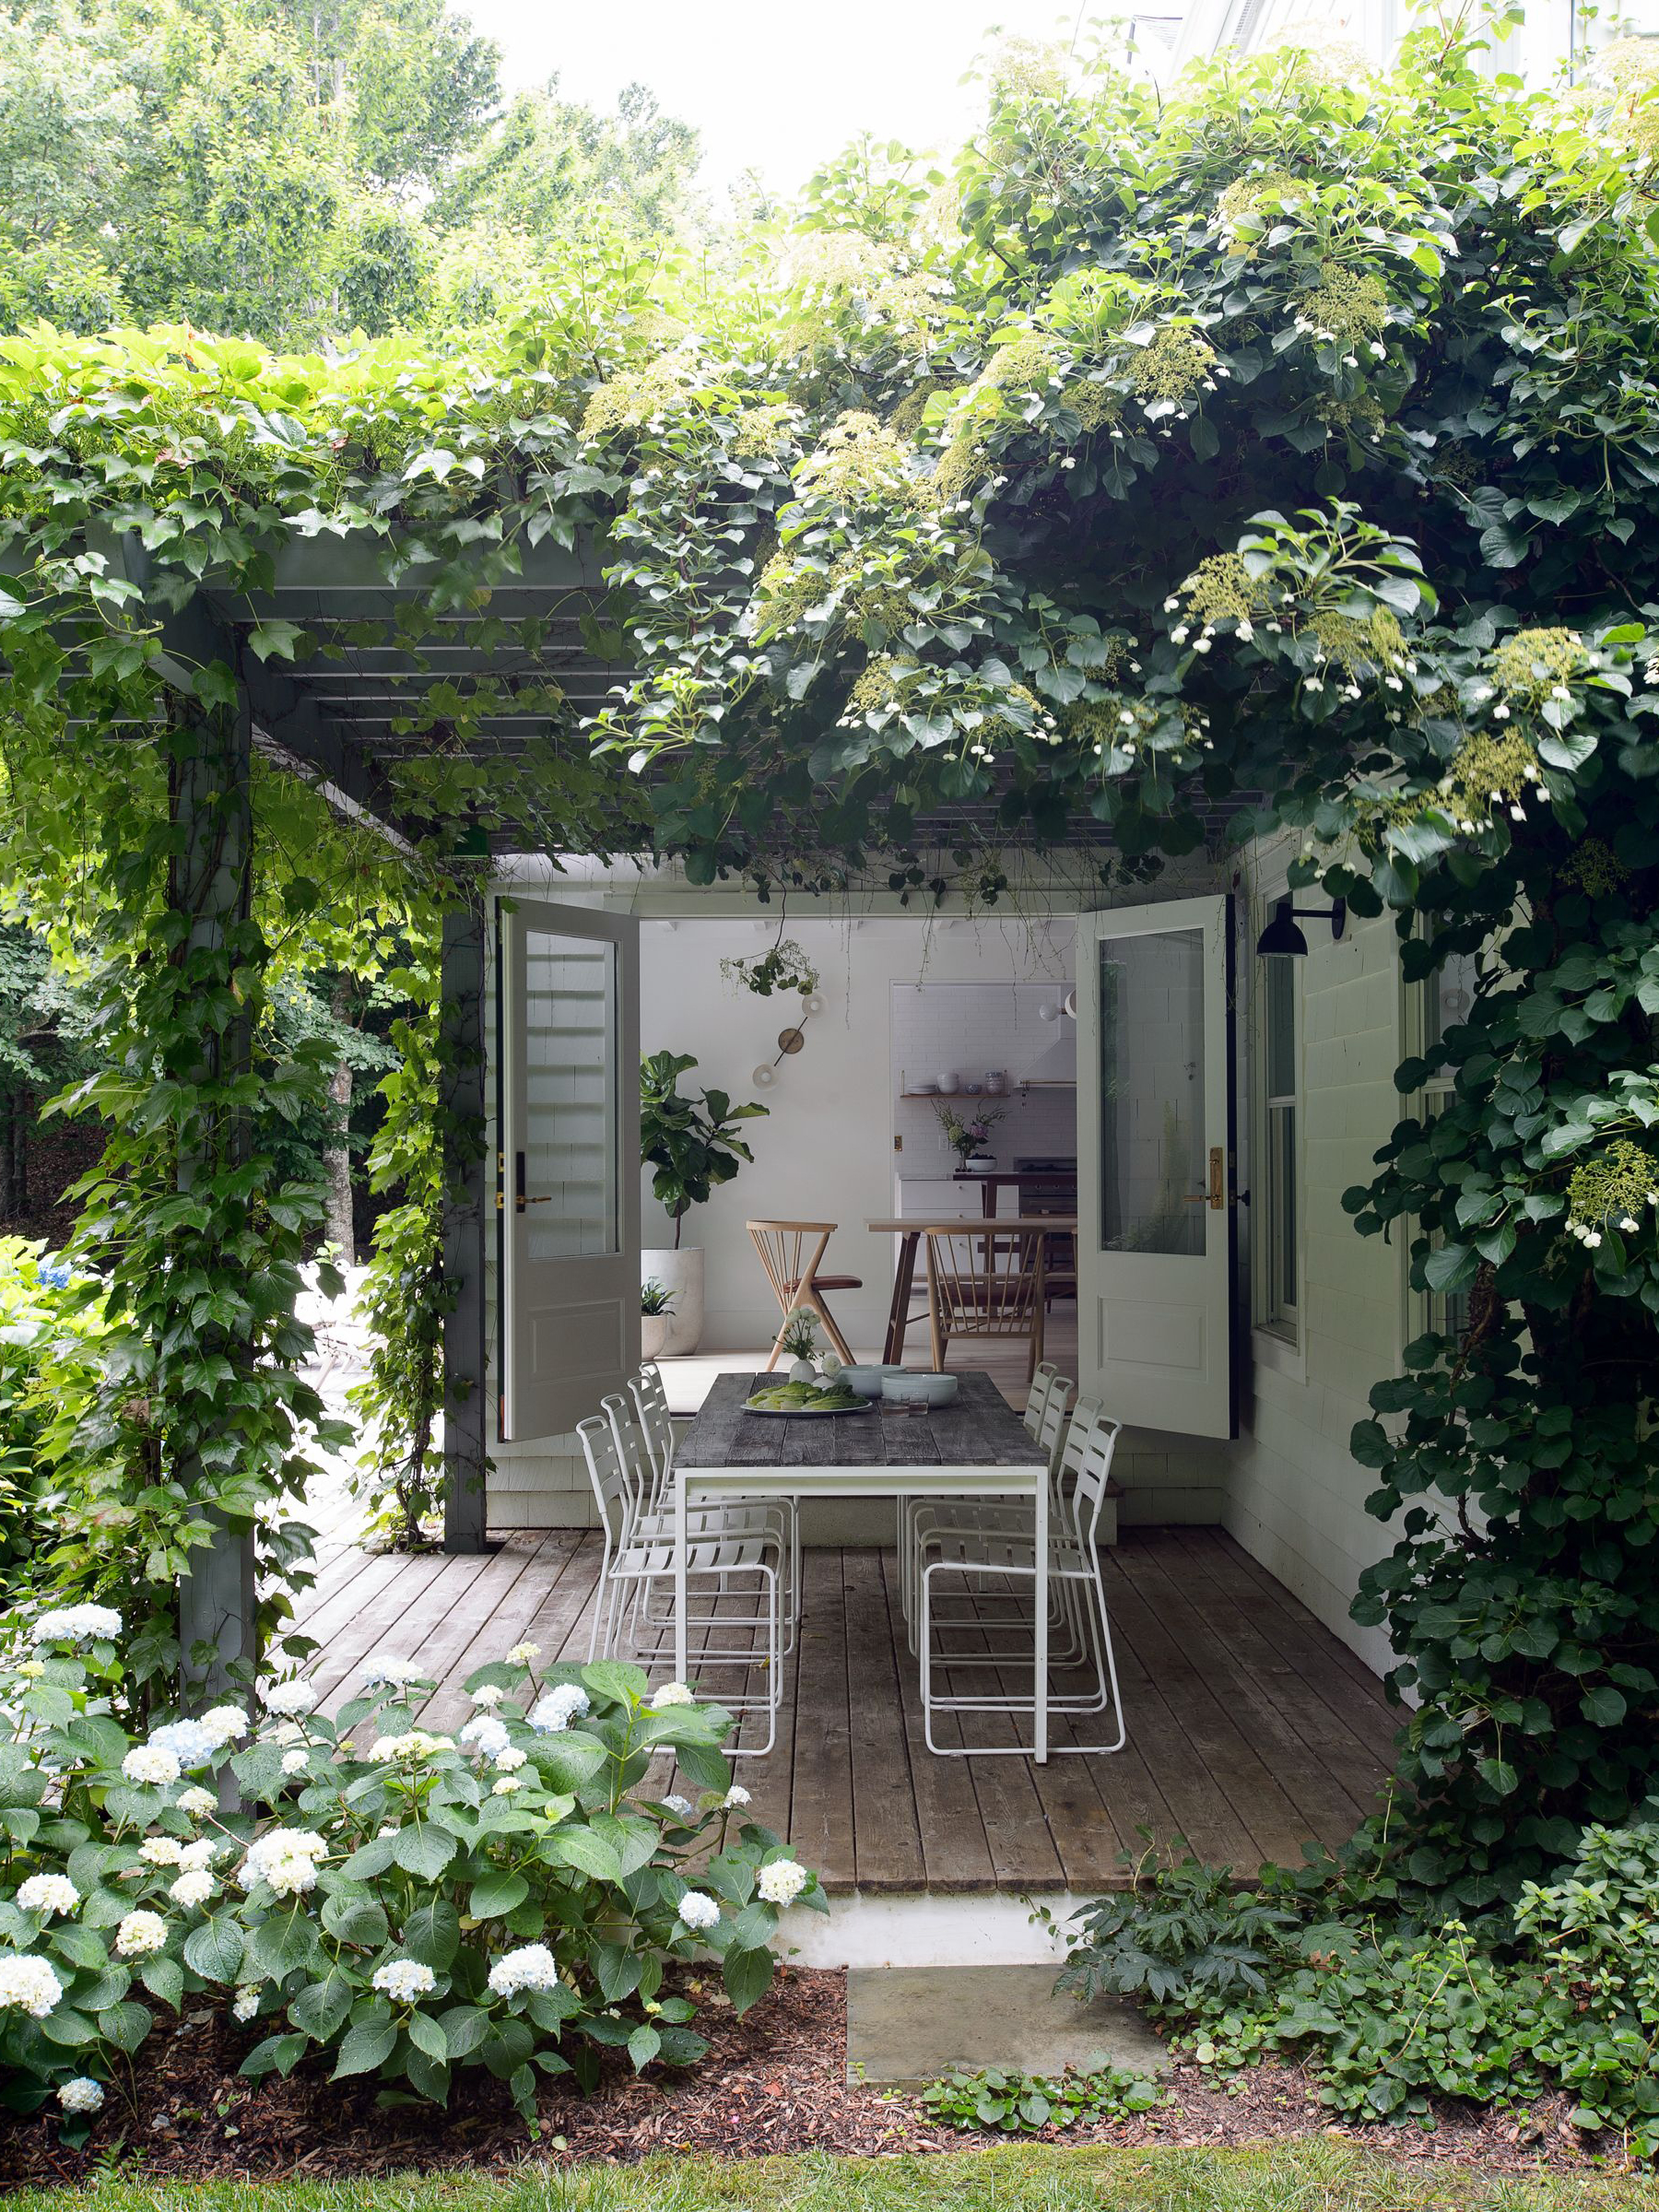 20 Scandinavian Design Ideas for your Outdoor Patio ... on Patio Remodel Ideas id=95548